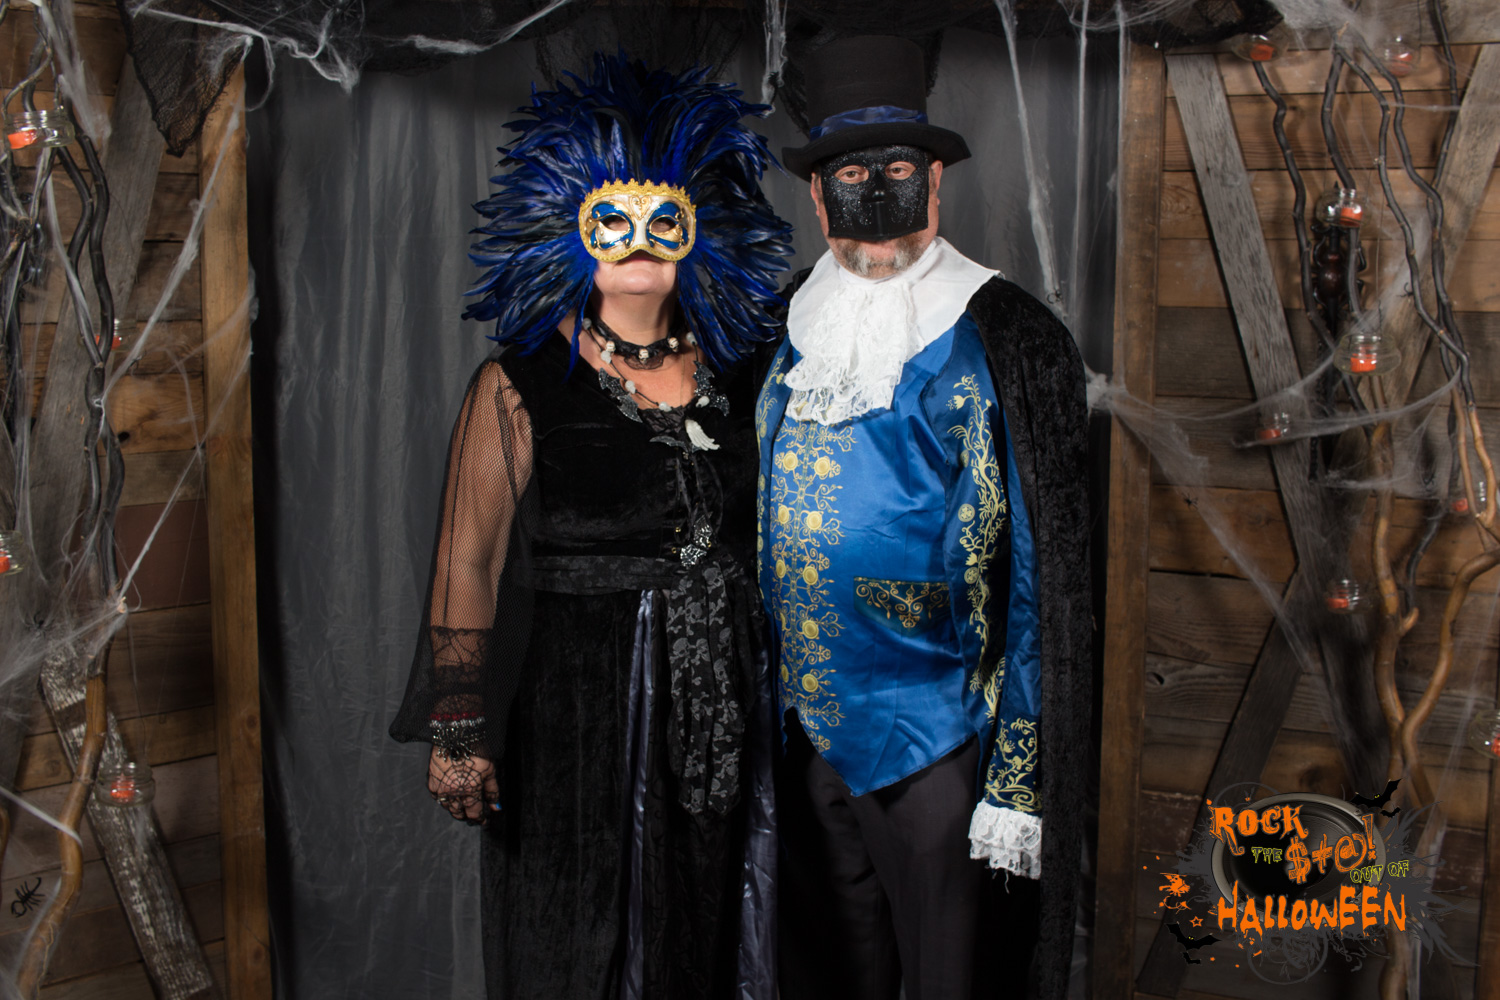 Halloween-PhotoBooth-005-6669